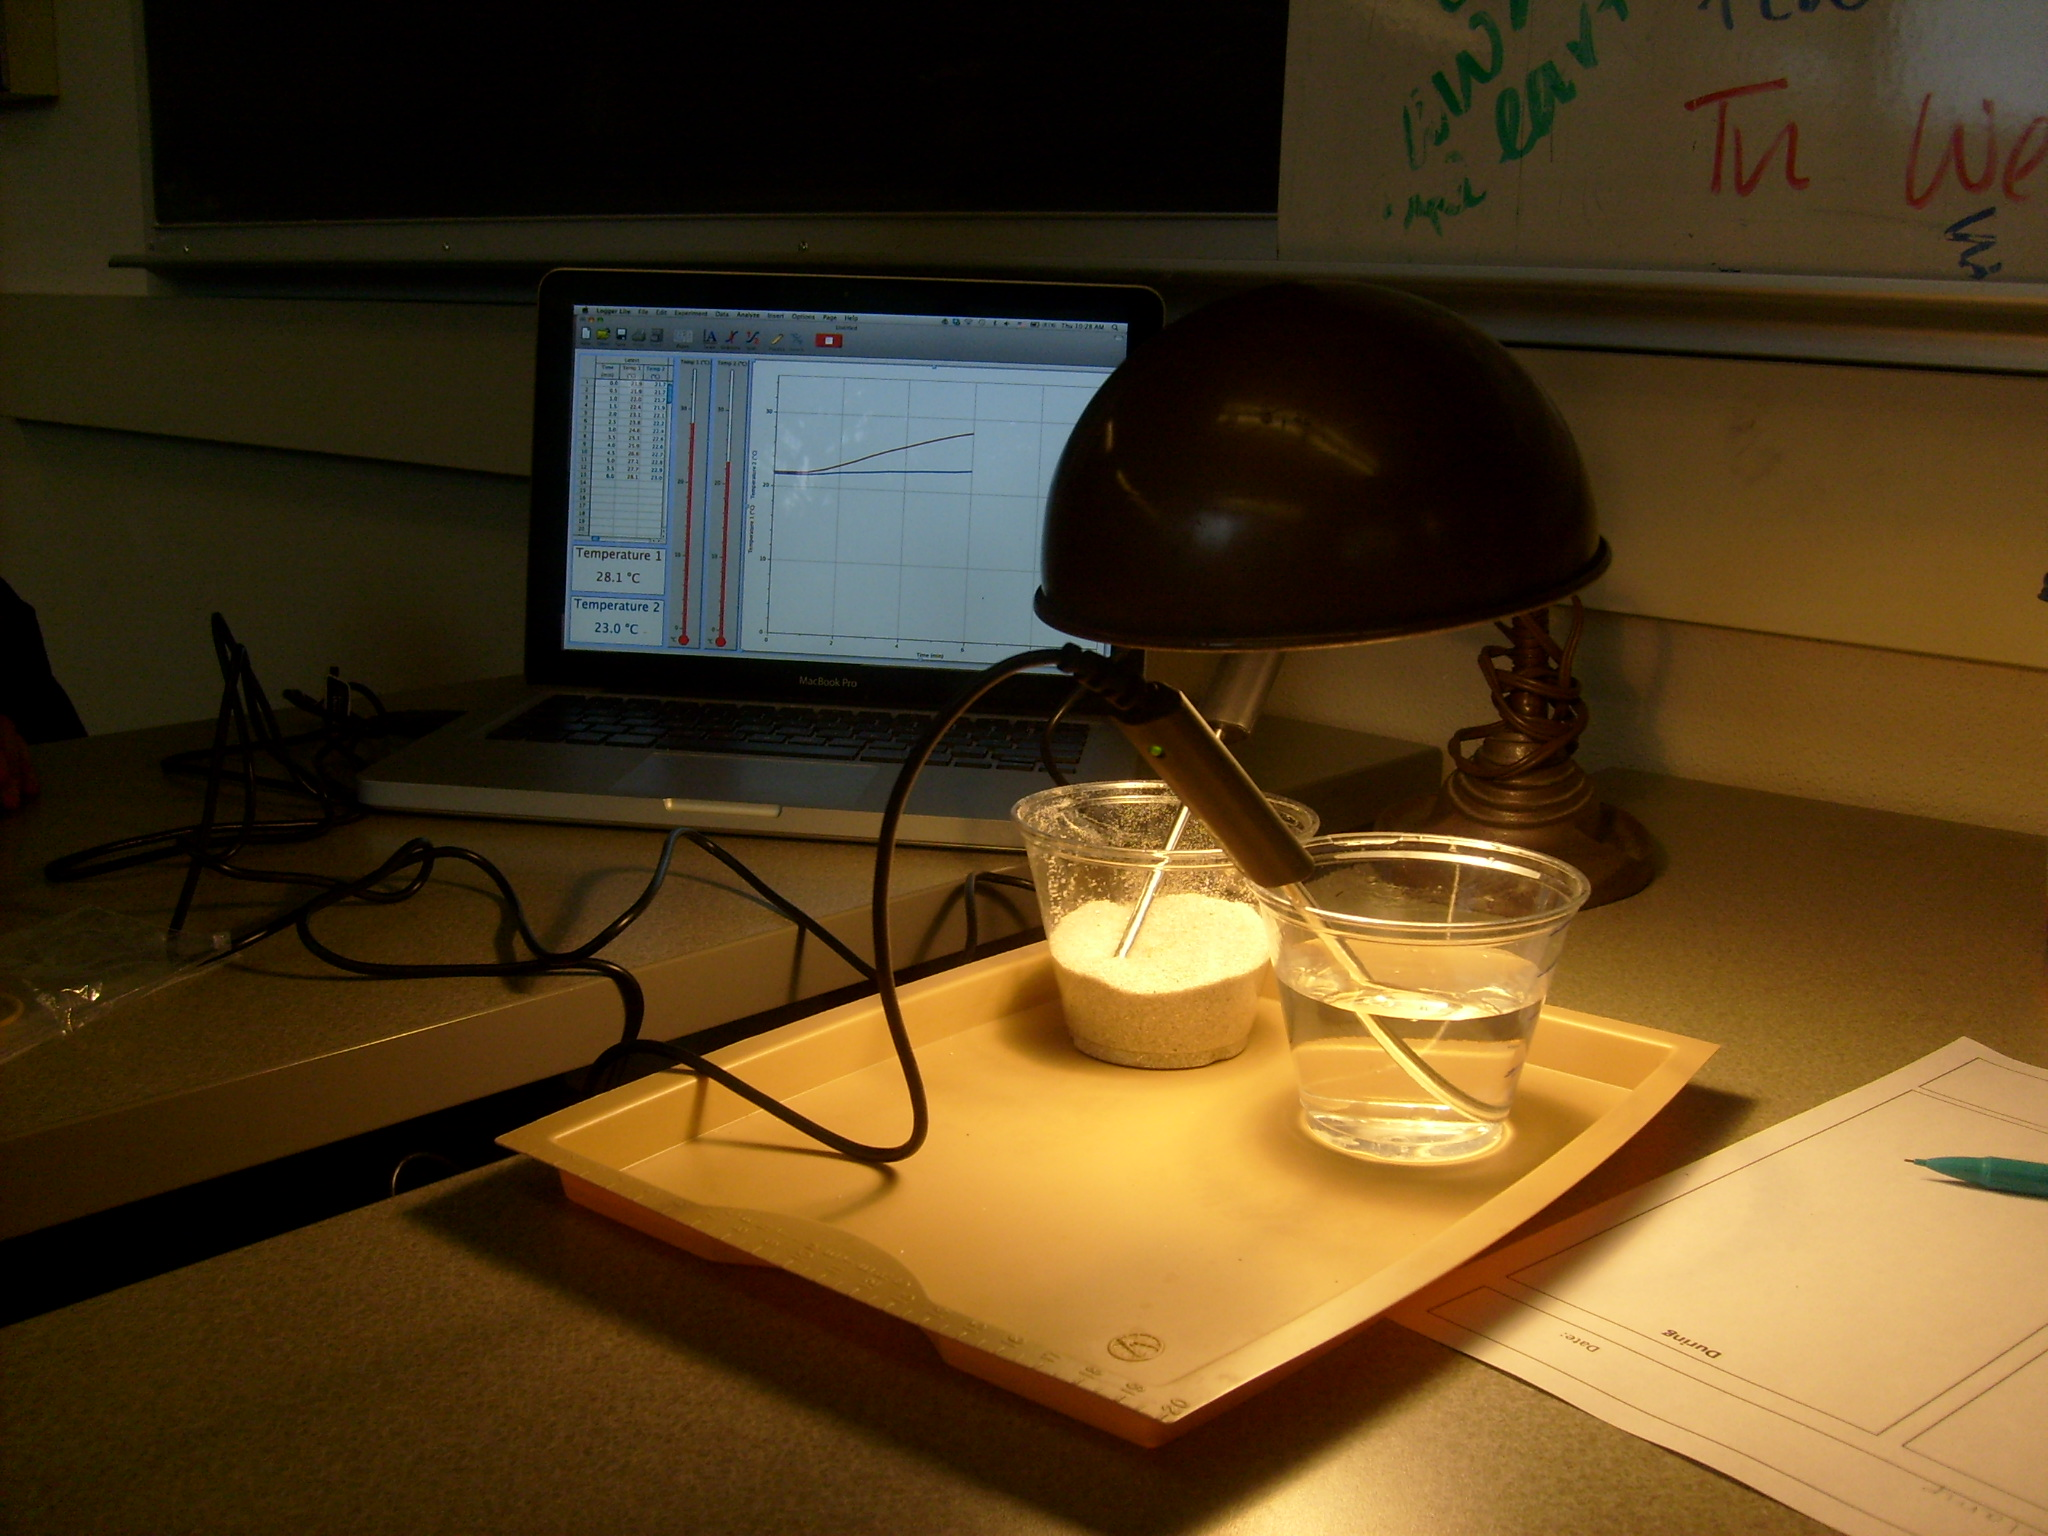 Set up for comparing the way that energy from a lamp warms up sand and water.